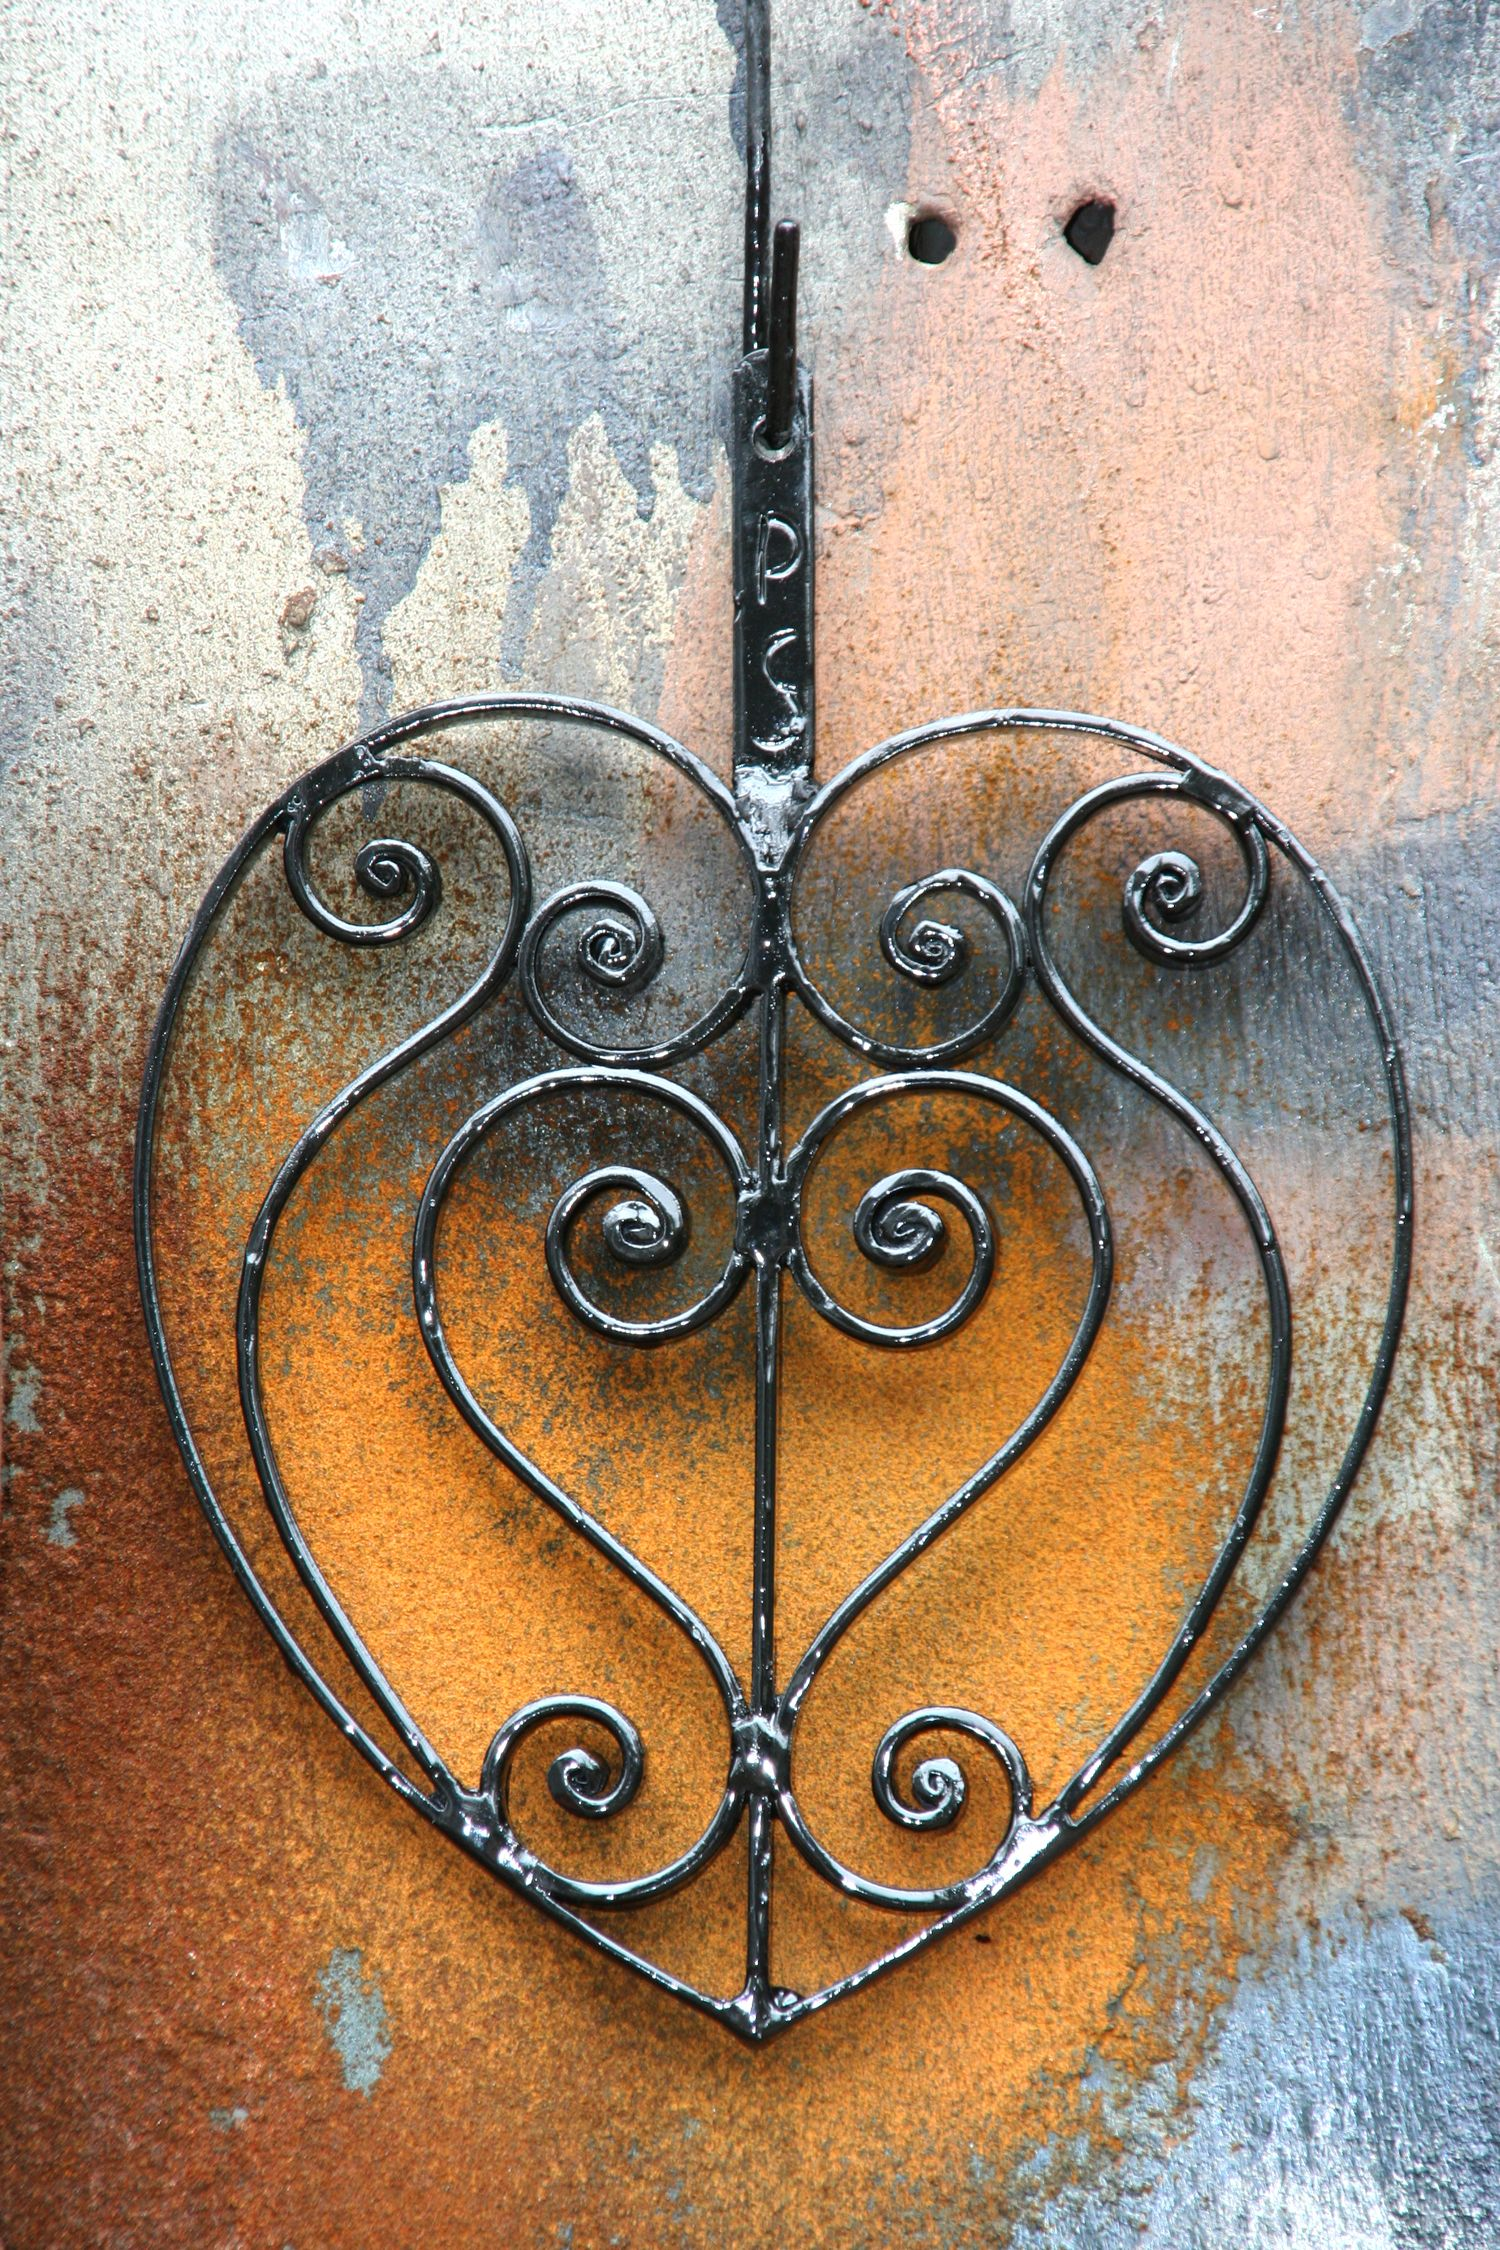 Wrought Iron Heart Wall Decor Welcome To The Philip Simmons Foundation  Gates  Pinterest